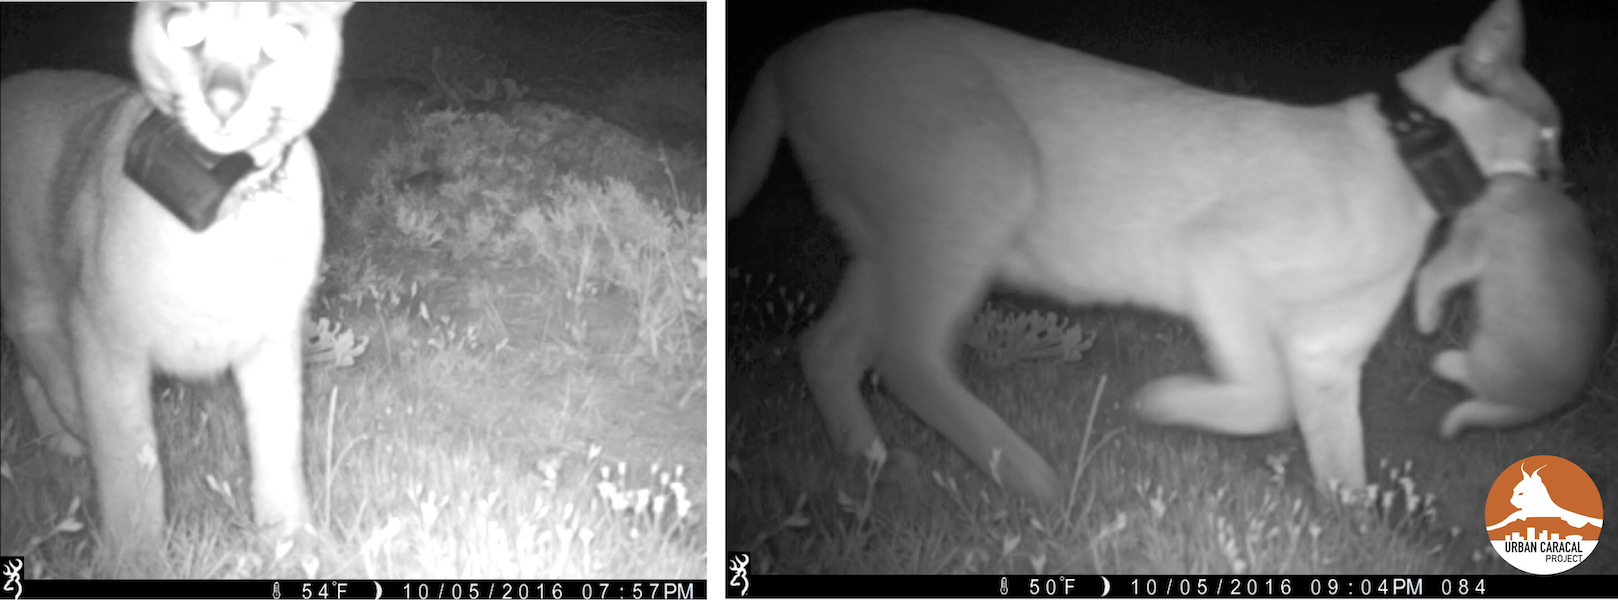 Luna, suspicious of our cameras, is seen here moving her kitten to a new den site. On the left she spends significant time sniffing the camera, and an hour later moves her (big) baby!